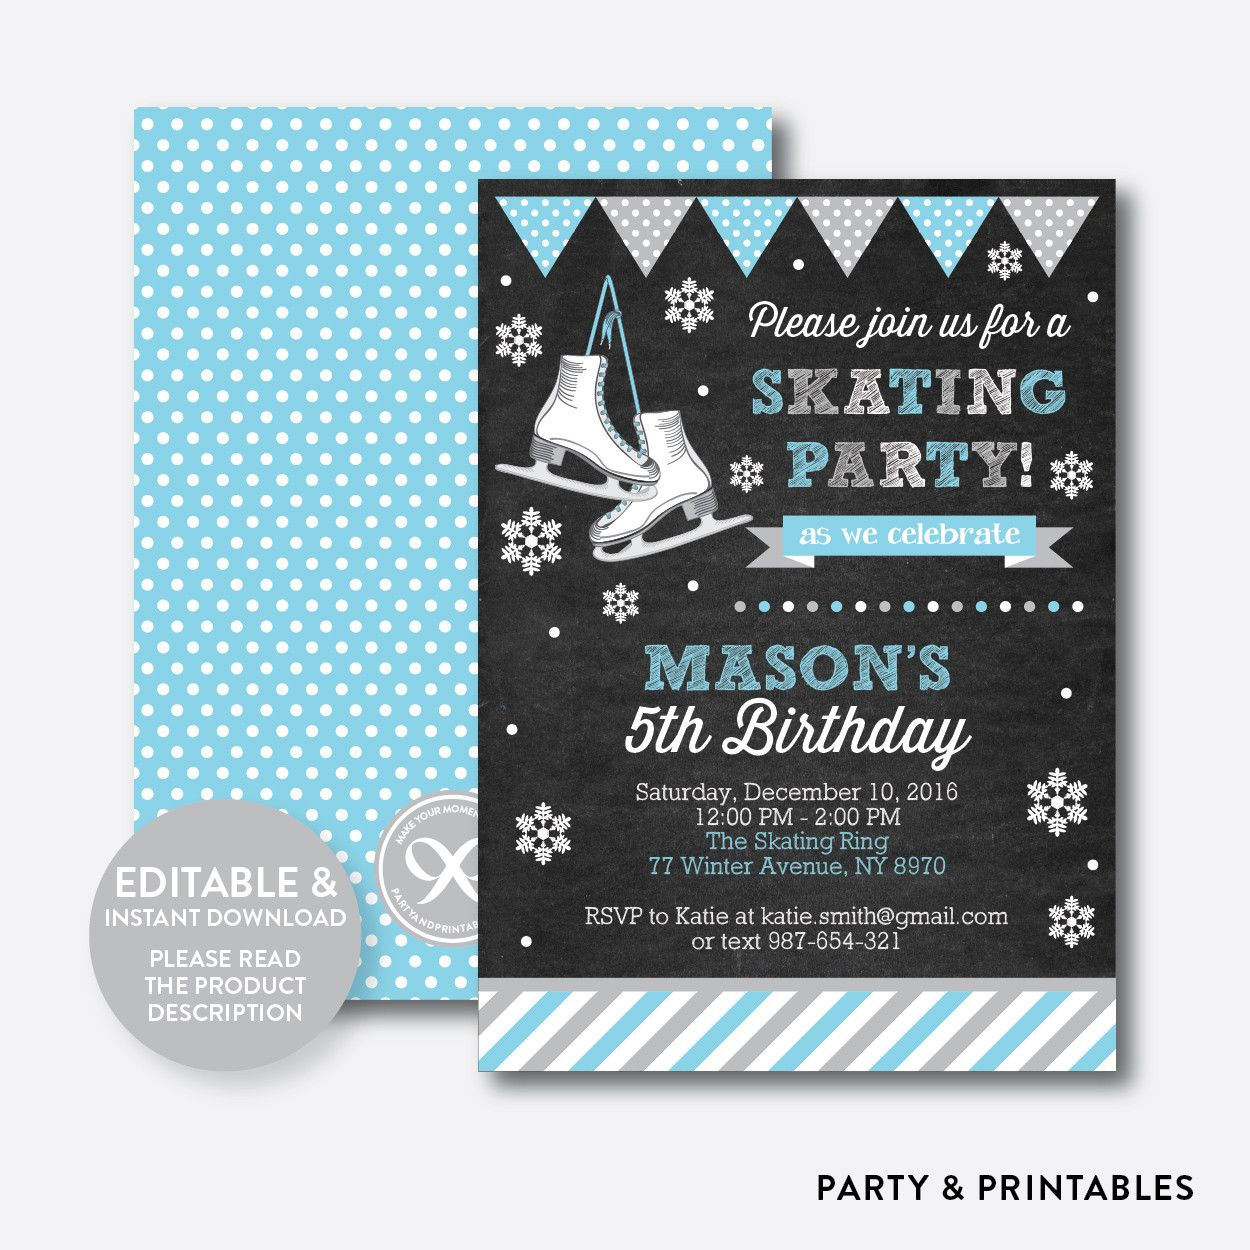 Ice Skating Blue ... http://partyandprintables.com/products/ice-skating-blue-chalkboard-kids-birthday-invitation-editable-instant-download-ckb-551?utm_campaign=social_autopilot&utm_source=pin&utm_medium=pin #partyprintables #birthdayinvitation #partysupplies #partydecor #kidsbirthday #babyshower